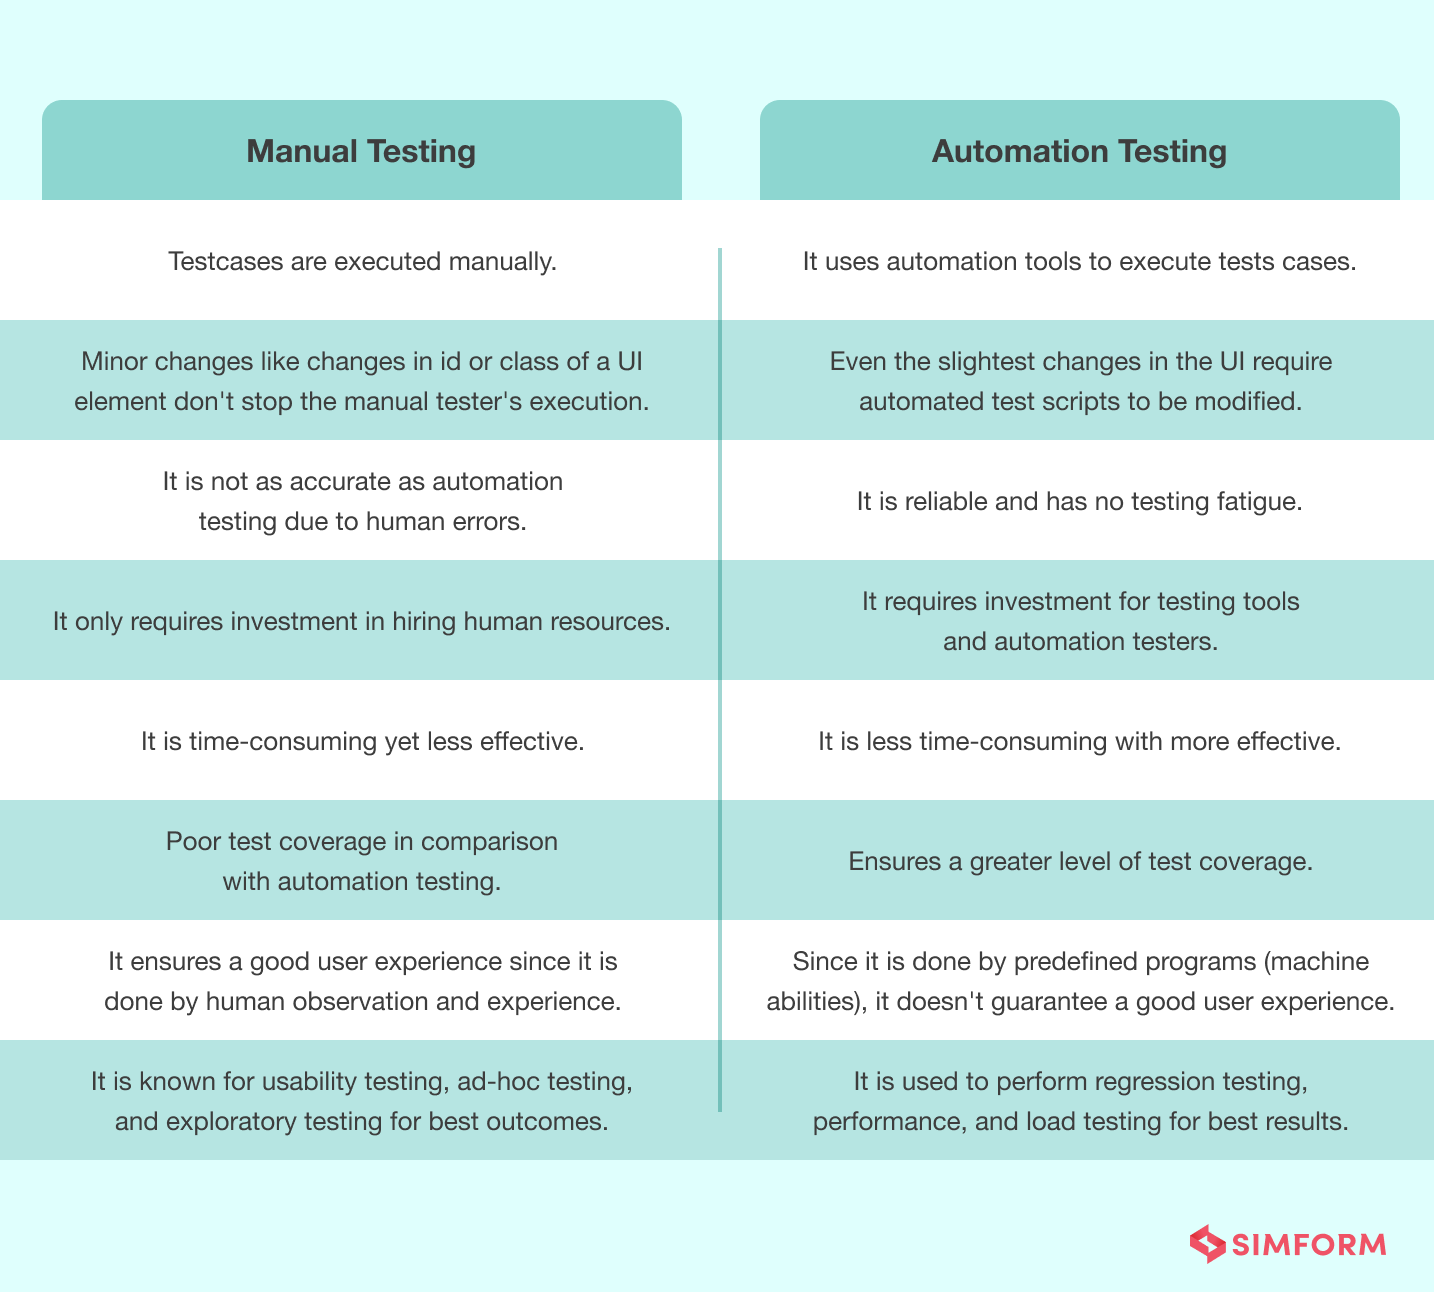 Software Testing Cost - Manual vs Automation testing